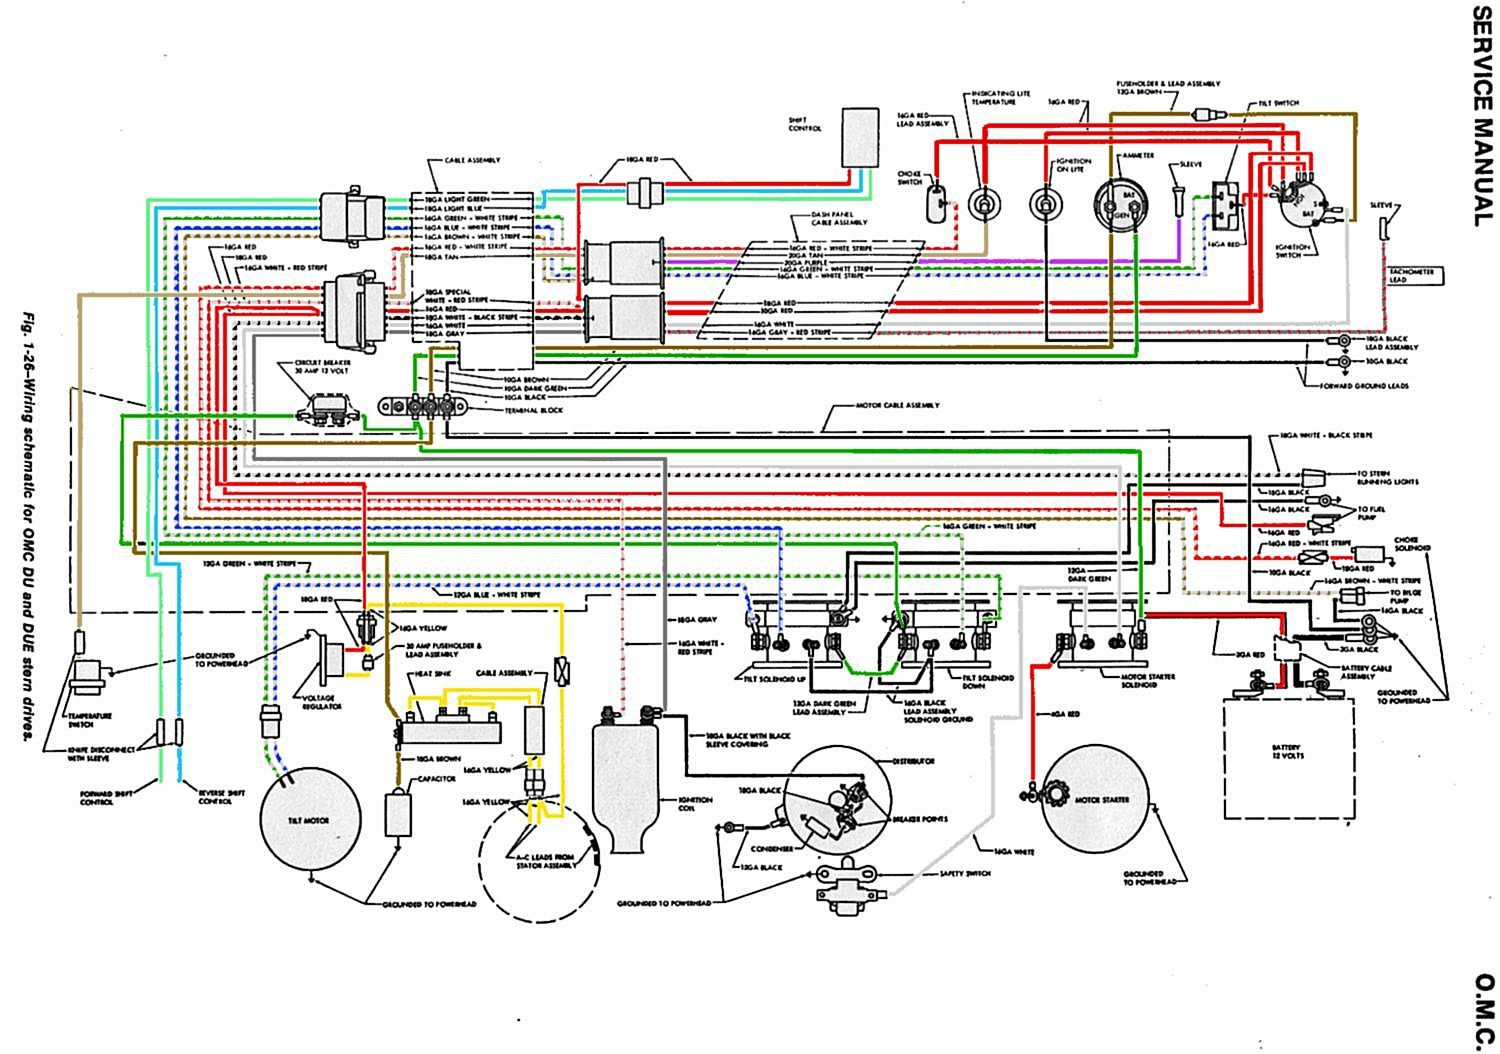 65 68_OMC_Wiring_Schematic?resize=665%2C467 trailer wiring diagram for 4 way, 5 way, 6 way and 7 way circuits triton trailer wiring schematic at panicattacktreatment.co